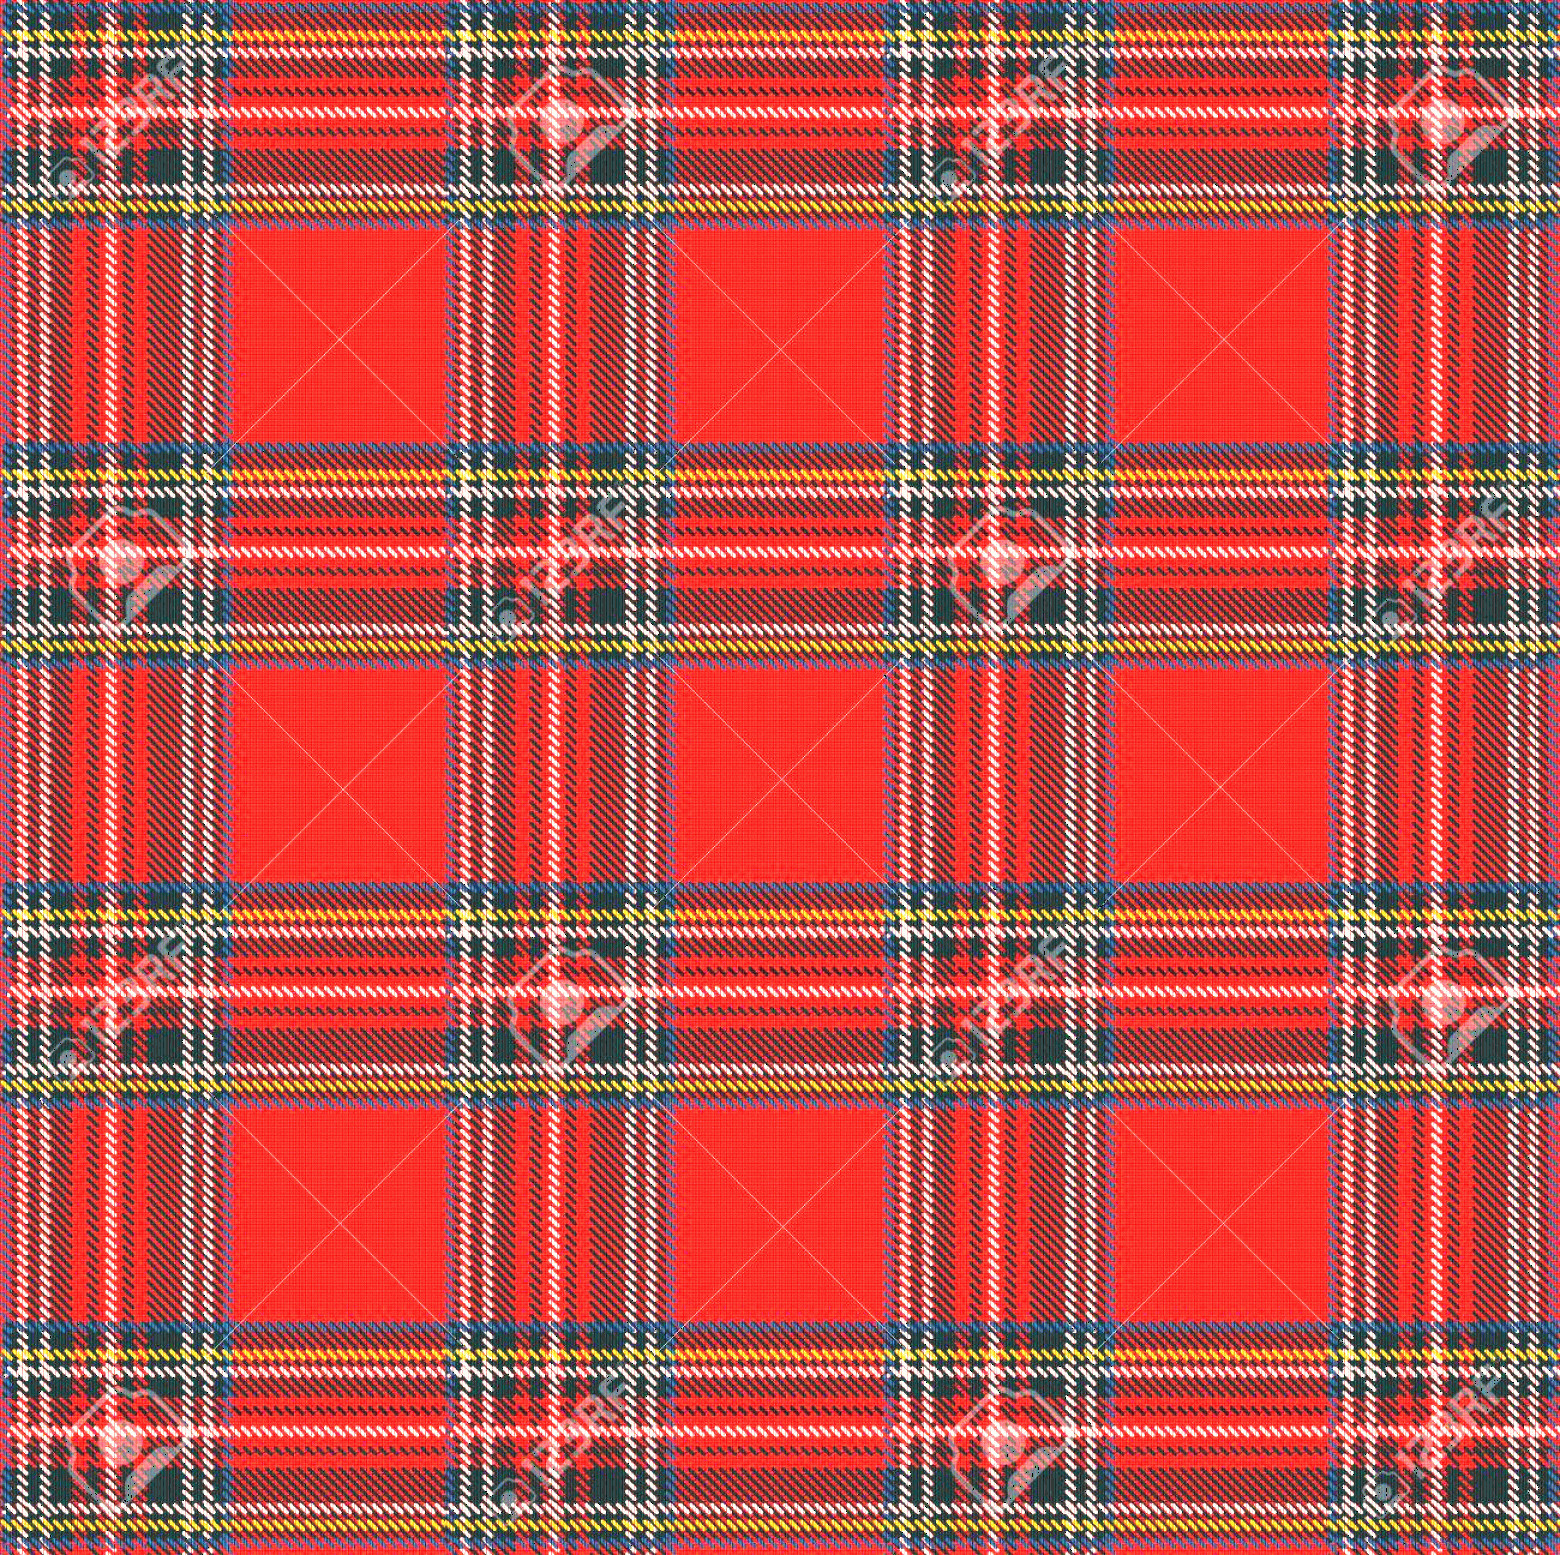 Plaid Vector: Phototartan Plaid Vector Pattern Background With Fabric Texture